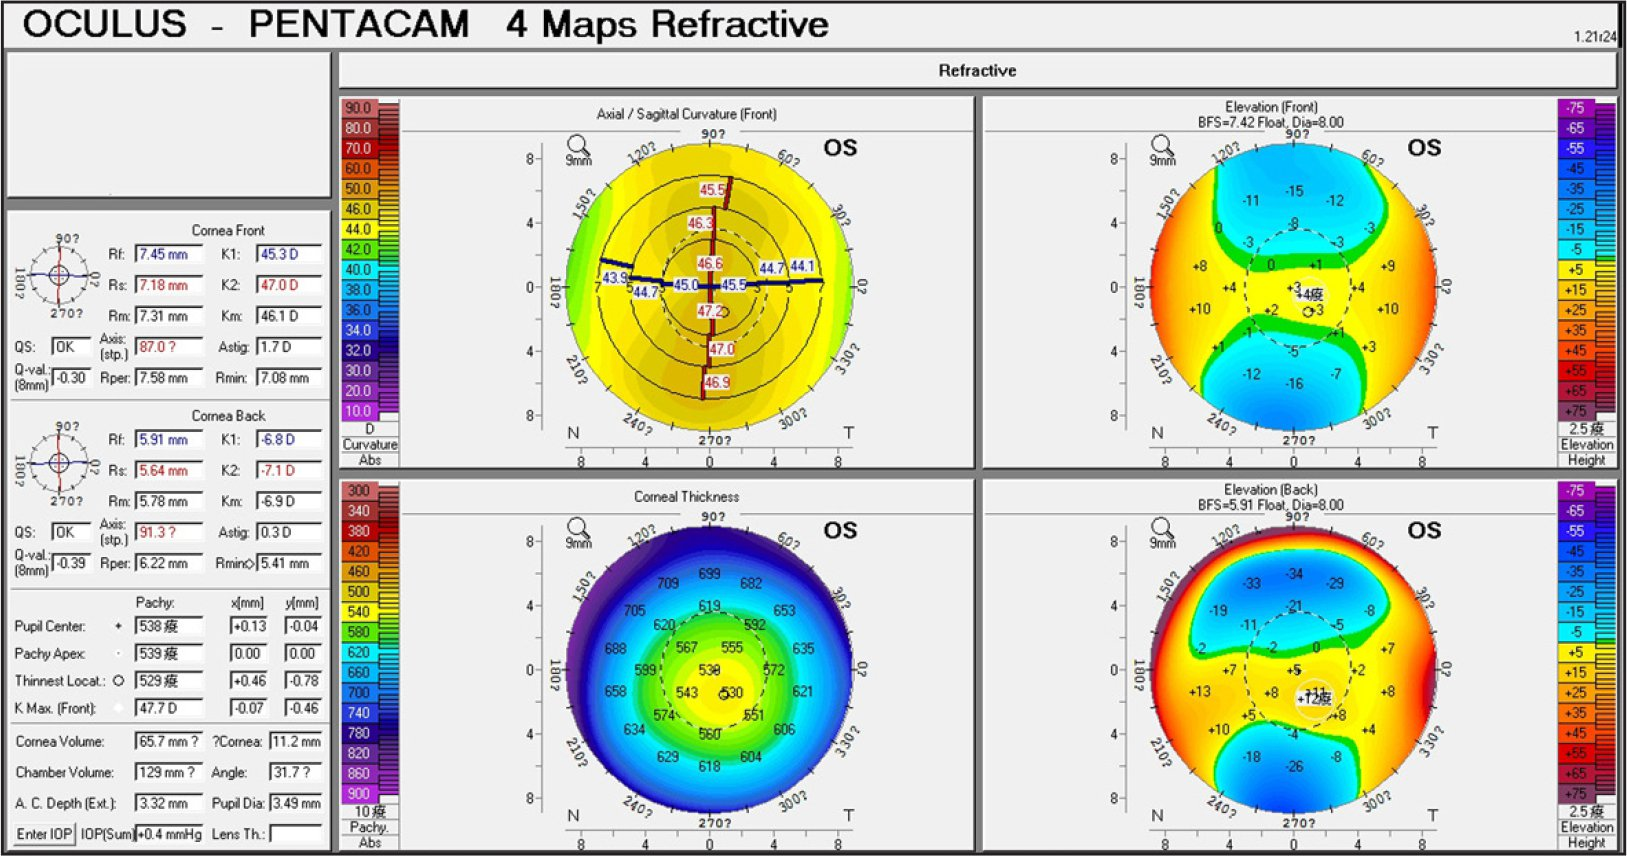 Corneal topography findings of patient 23 with subclinical keratoconus.